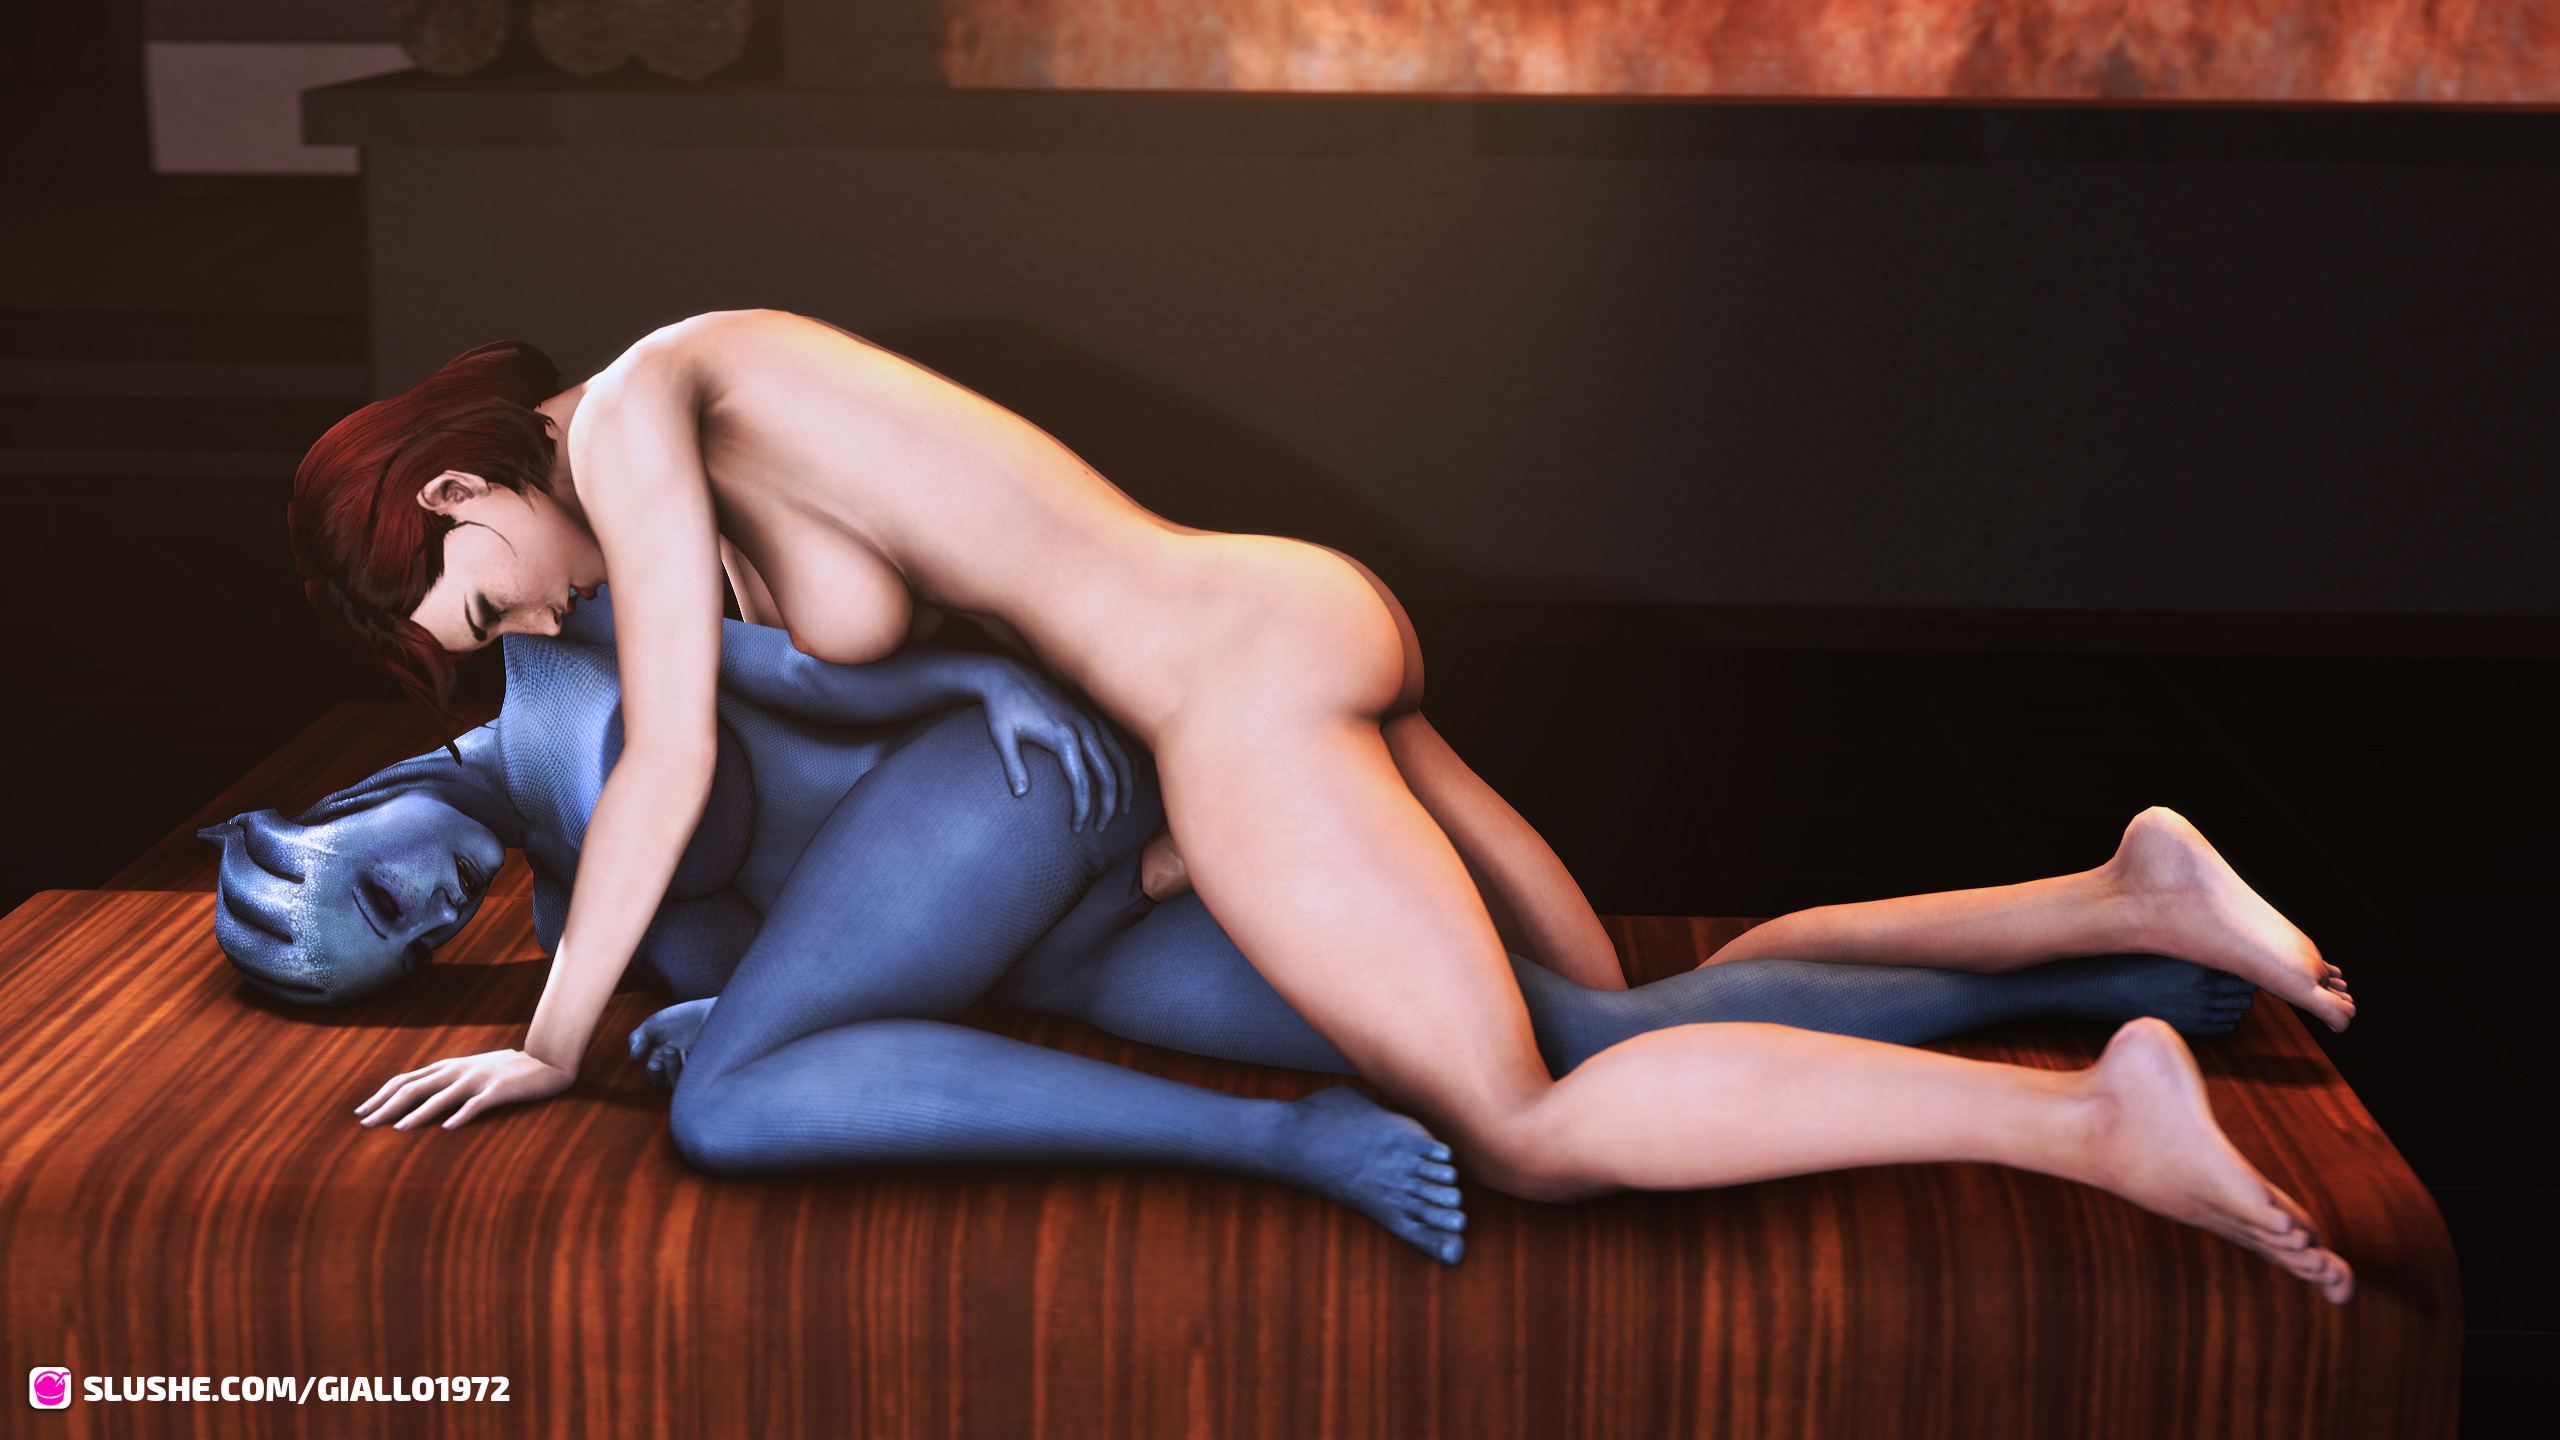 Femshep & Liara Making Love By The Fire.